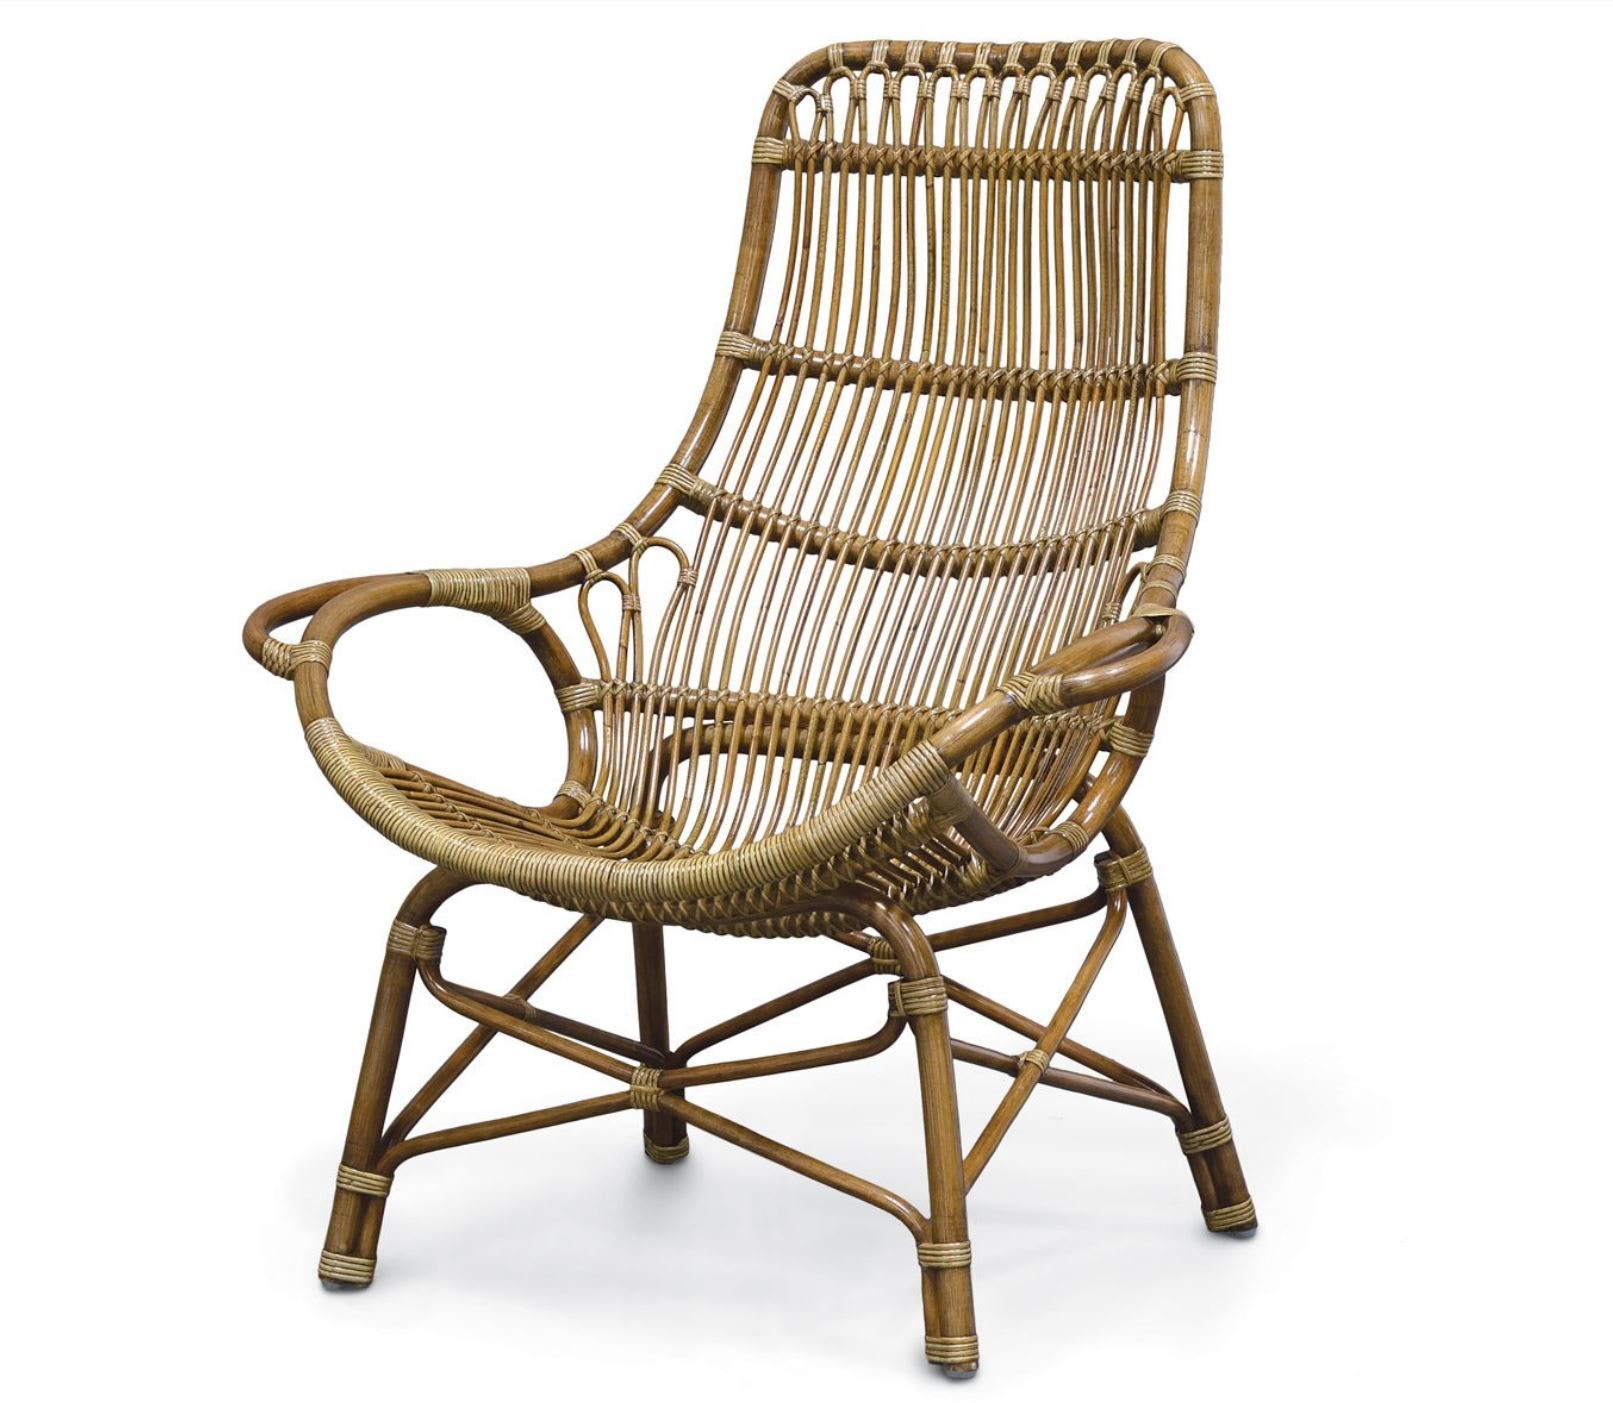 Good Featured Product RETRO LOUNGE CHAIR PA760983 From Walter E. Smithe  Furniture + Design